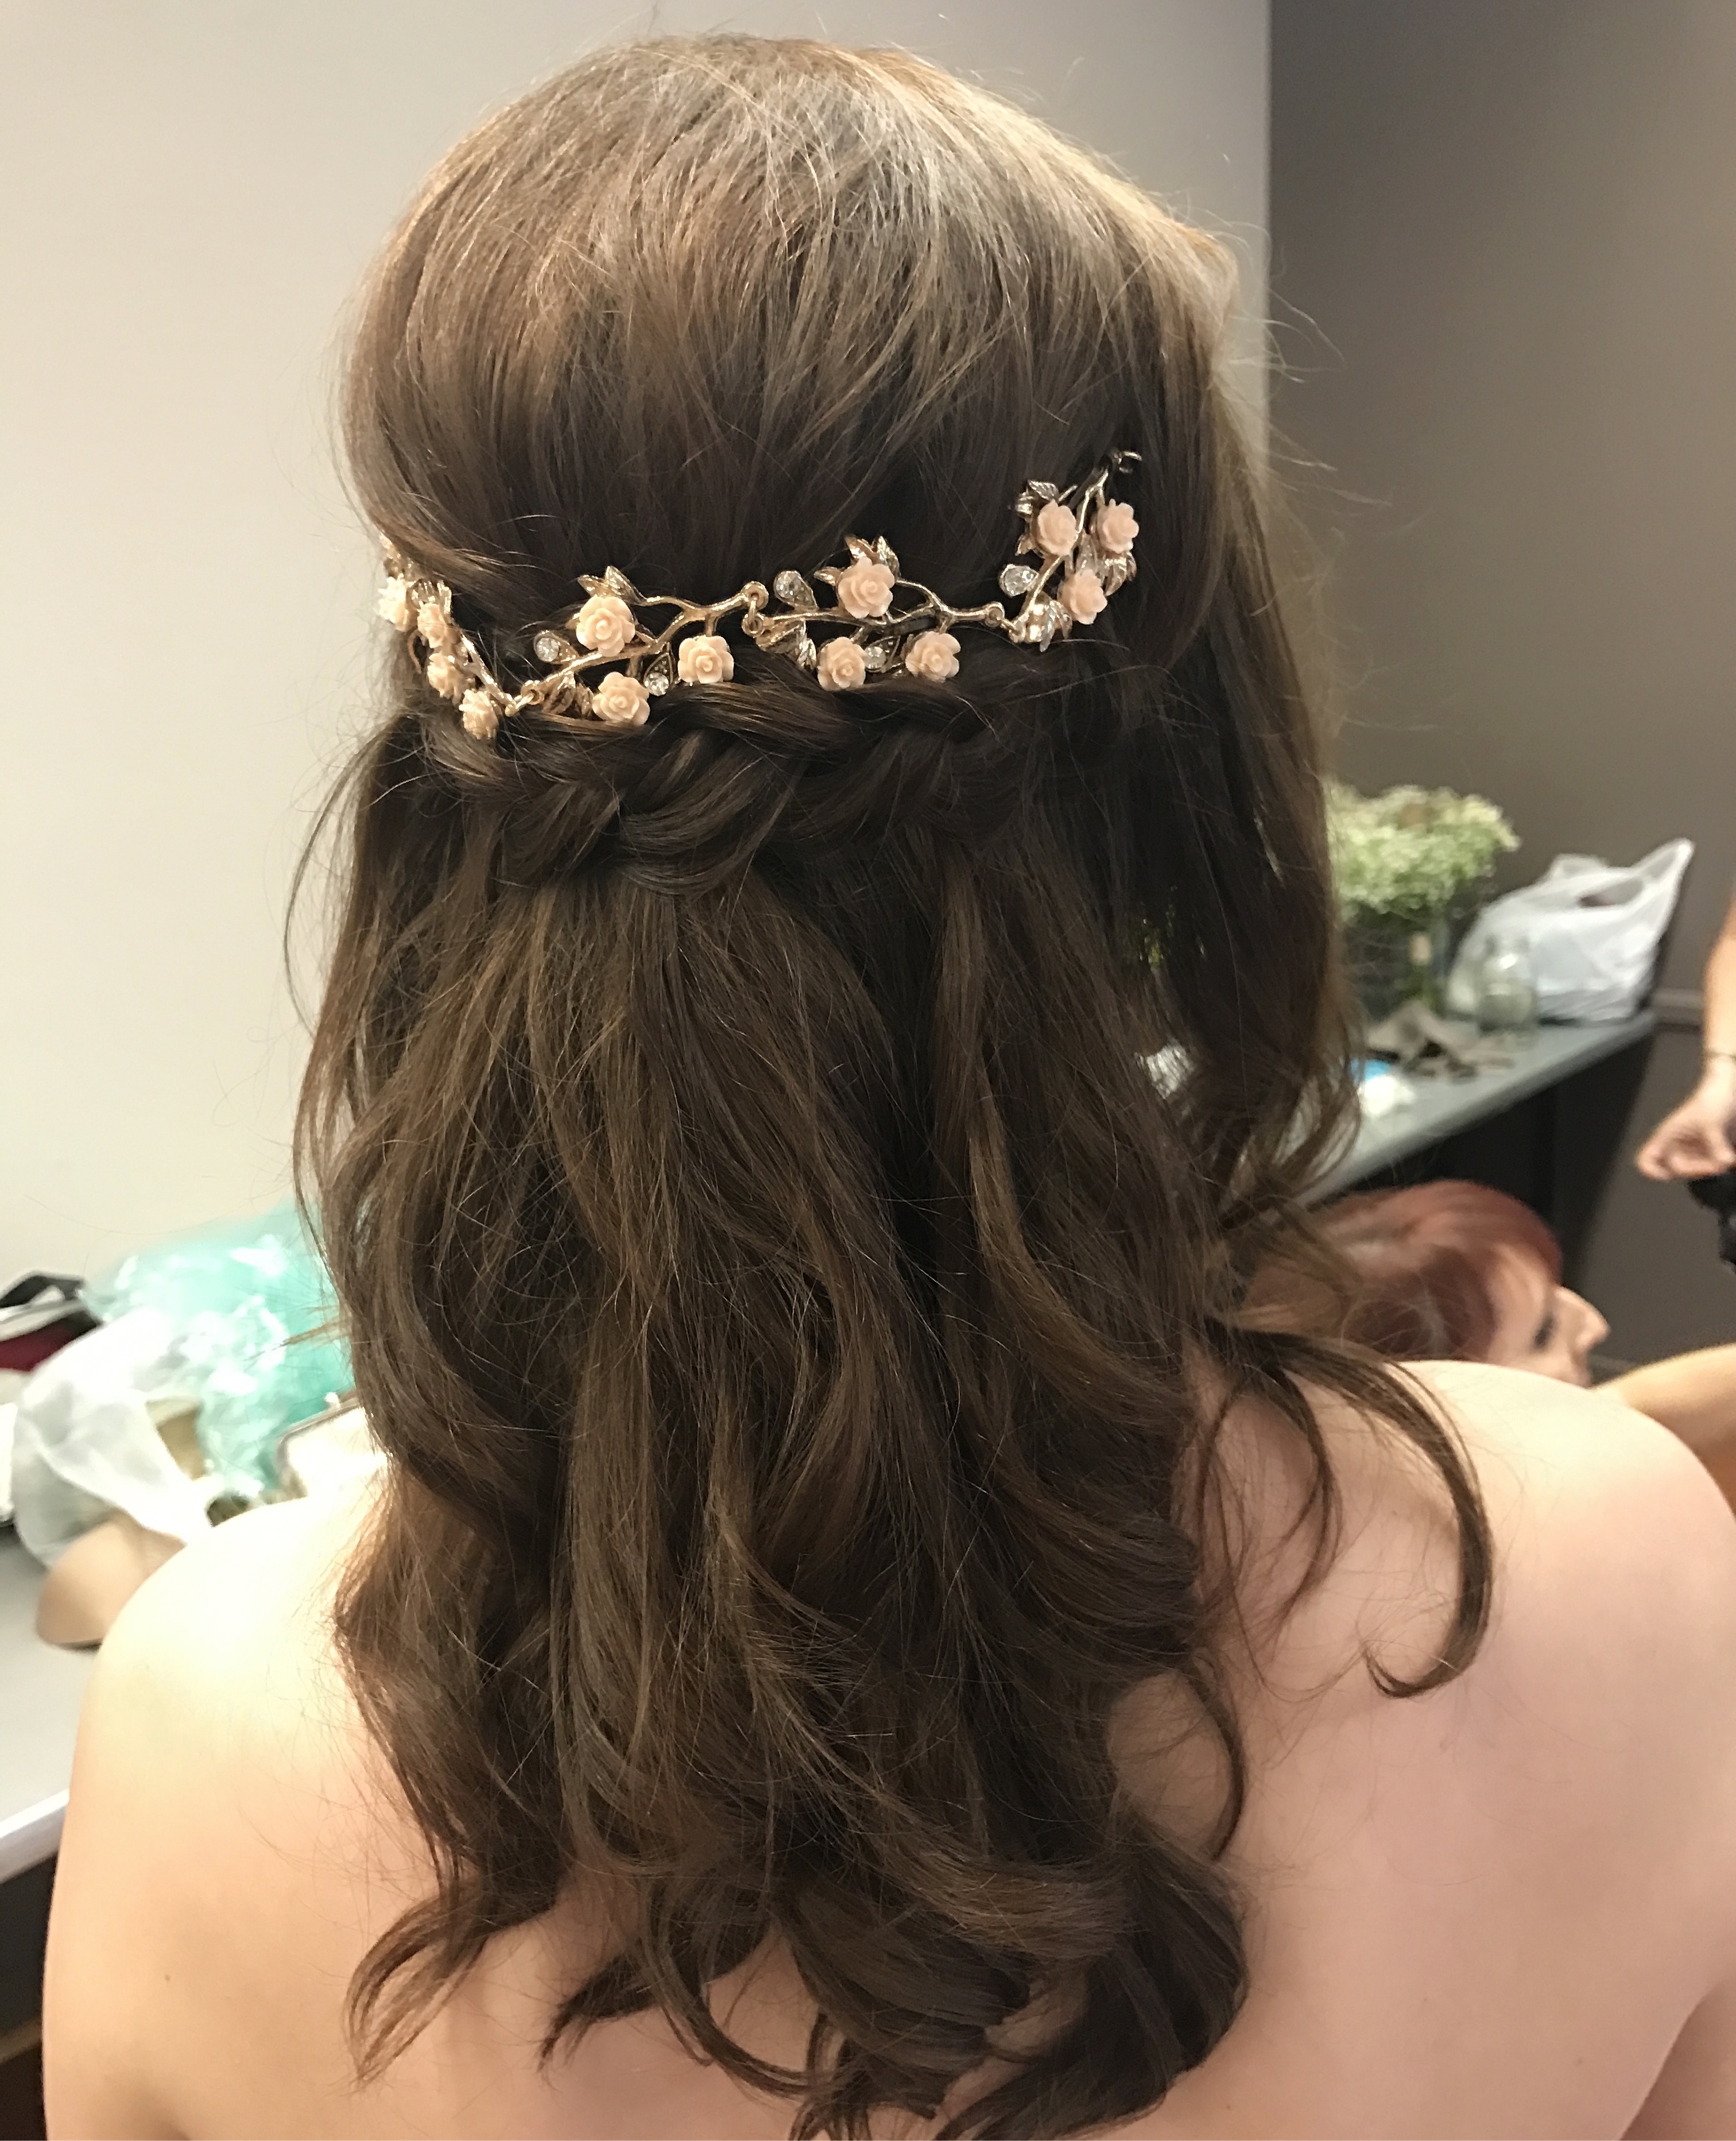 Hairstyles : Impressive Grecian Hairstyles Half Up With For Trendy Long Half Updo Hairstyles With Accessories (View 18 of 20)